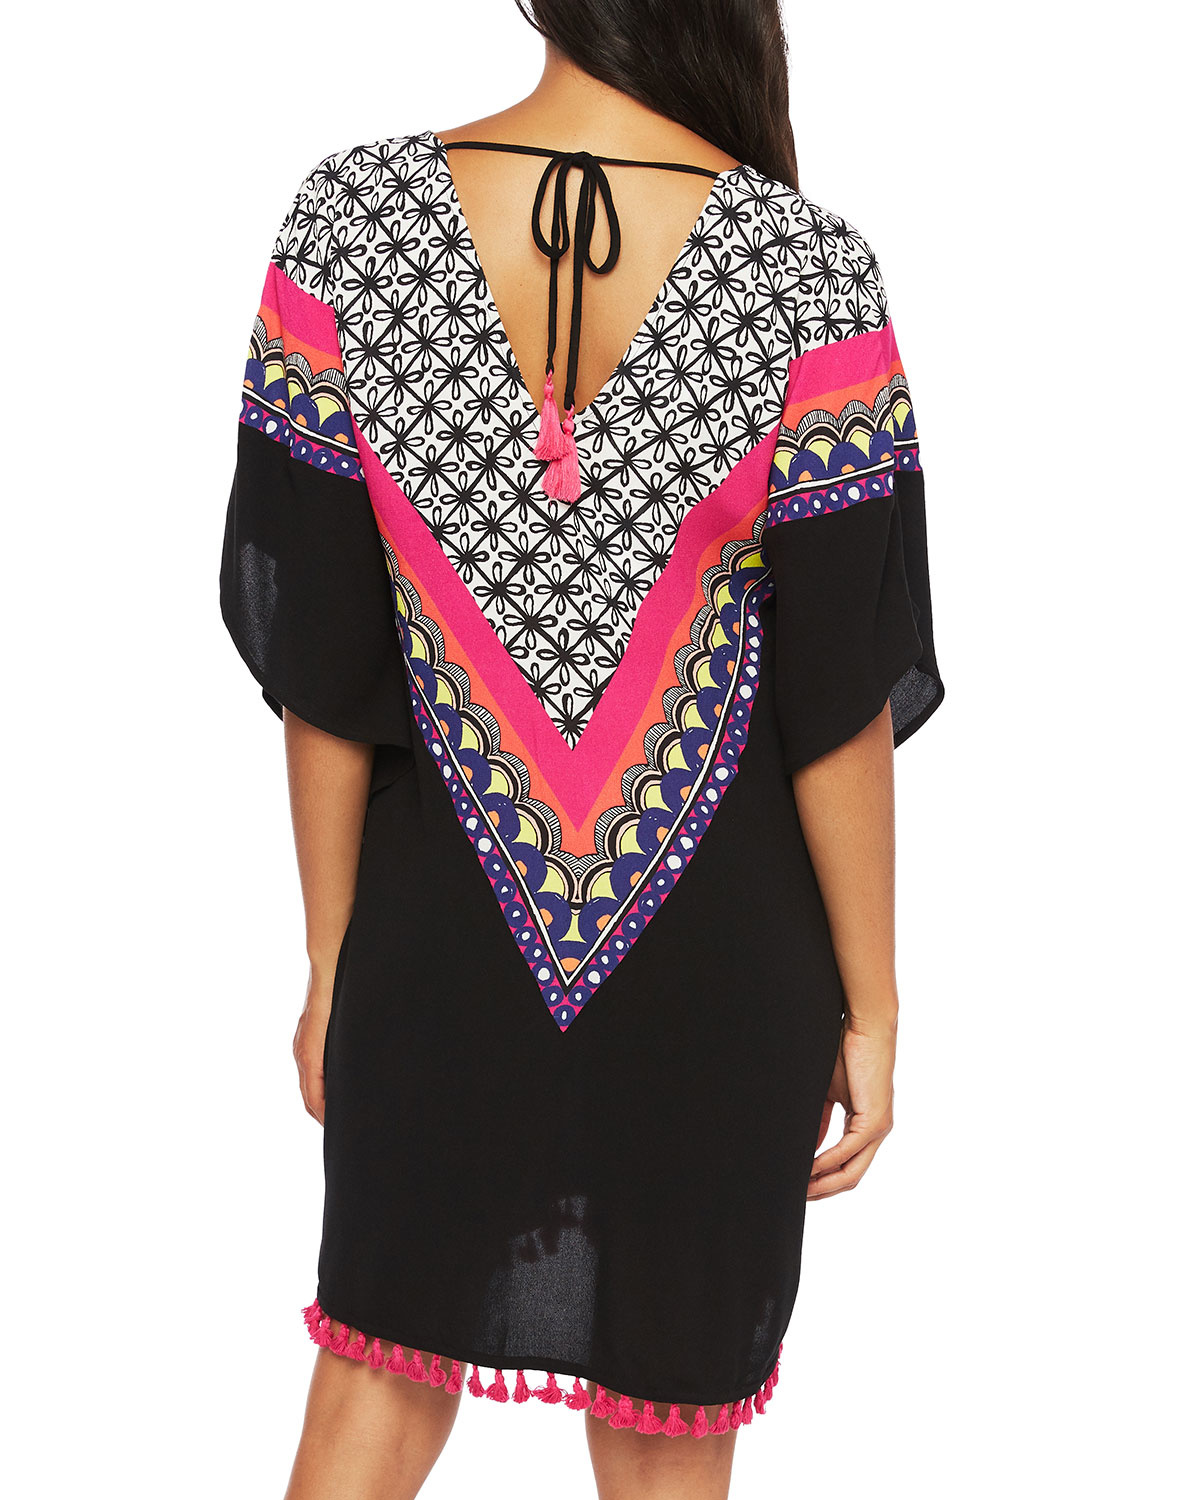 Trina Turk Swim Tanzania Cover Up